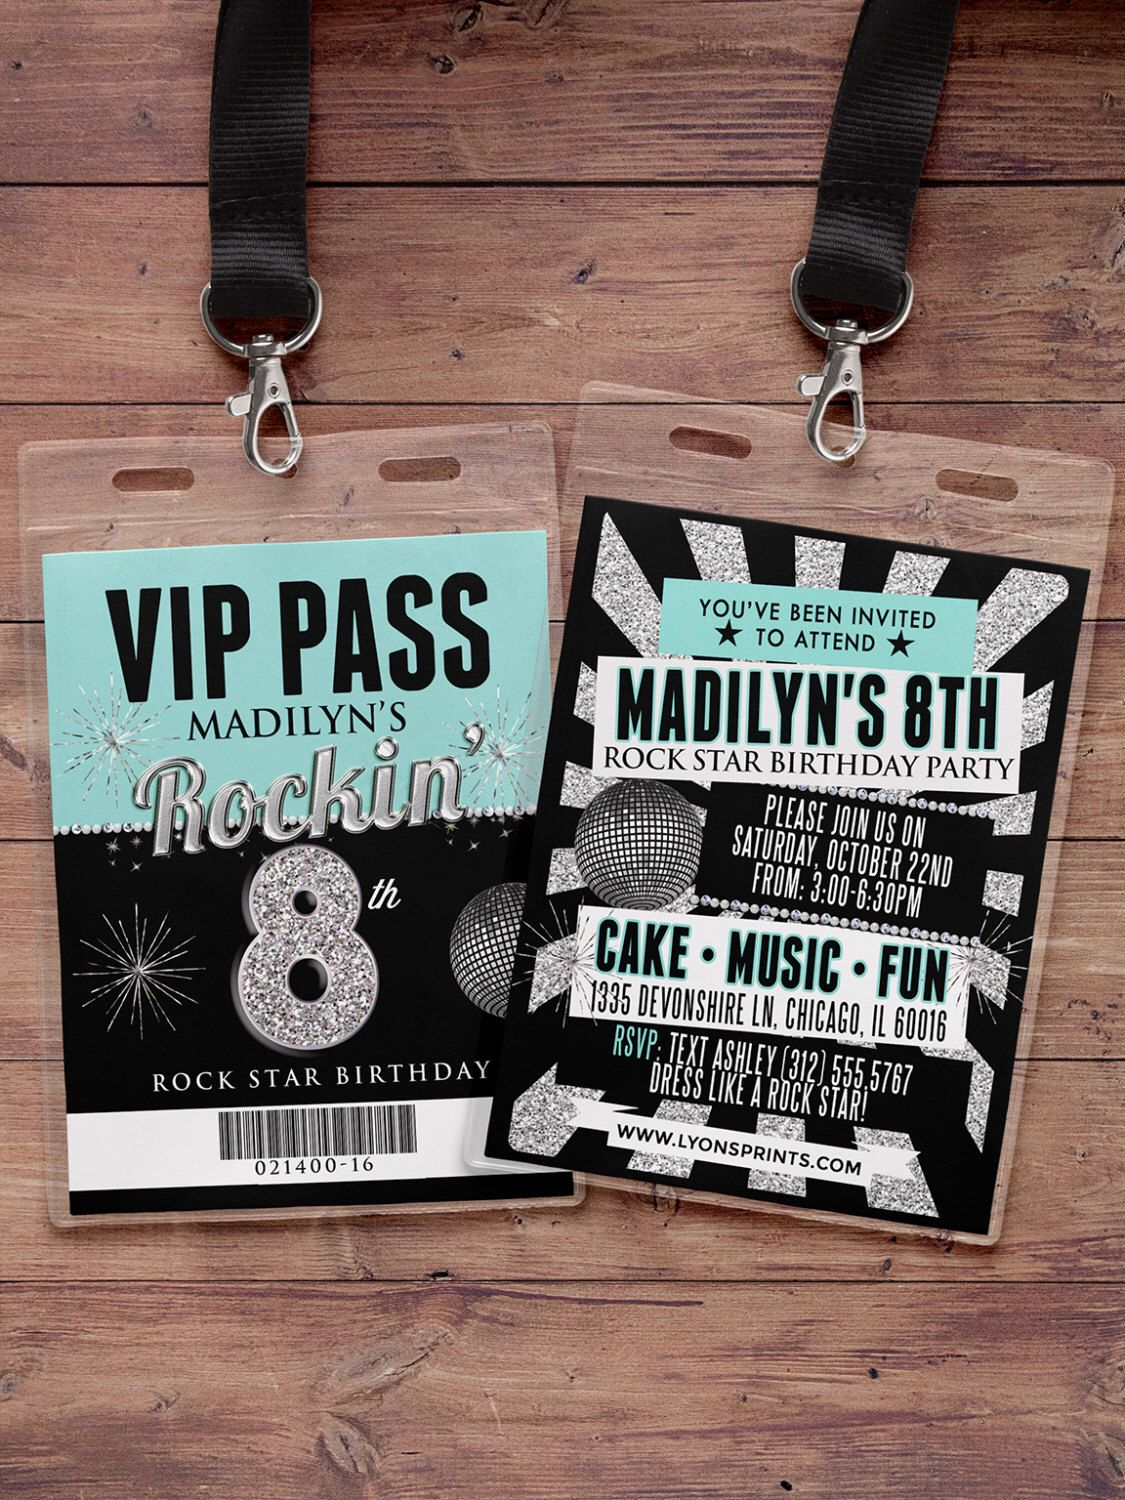 Any age, birthday invitation, rock star, VIP PASS, backstage pass, concert ticket, birthday invitation, wedding, baby shower, party favor #rockstarparty